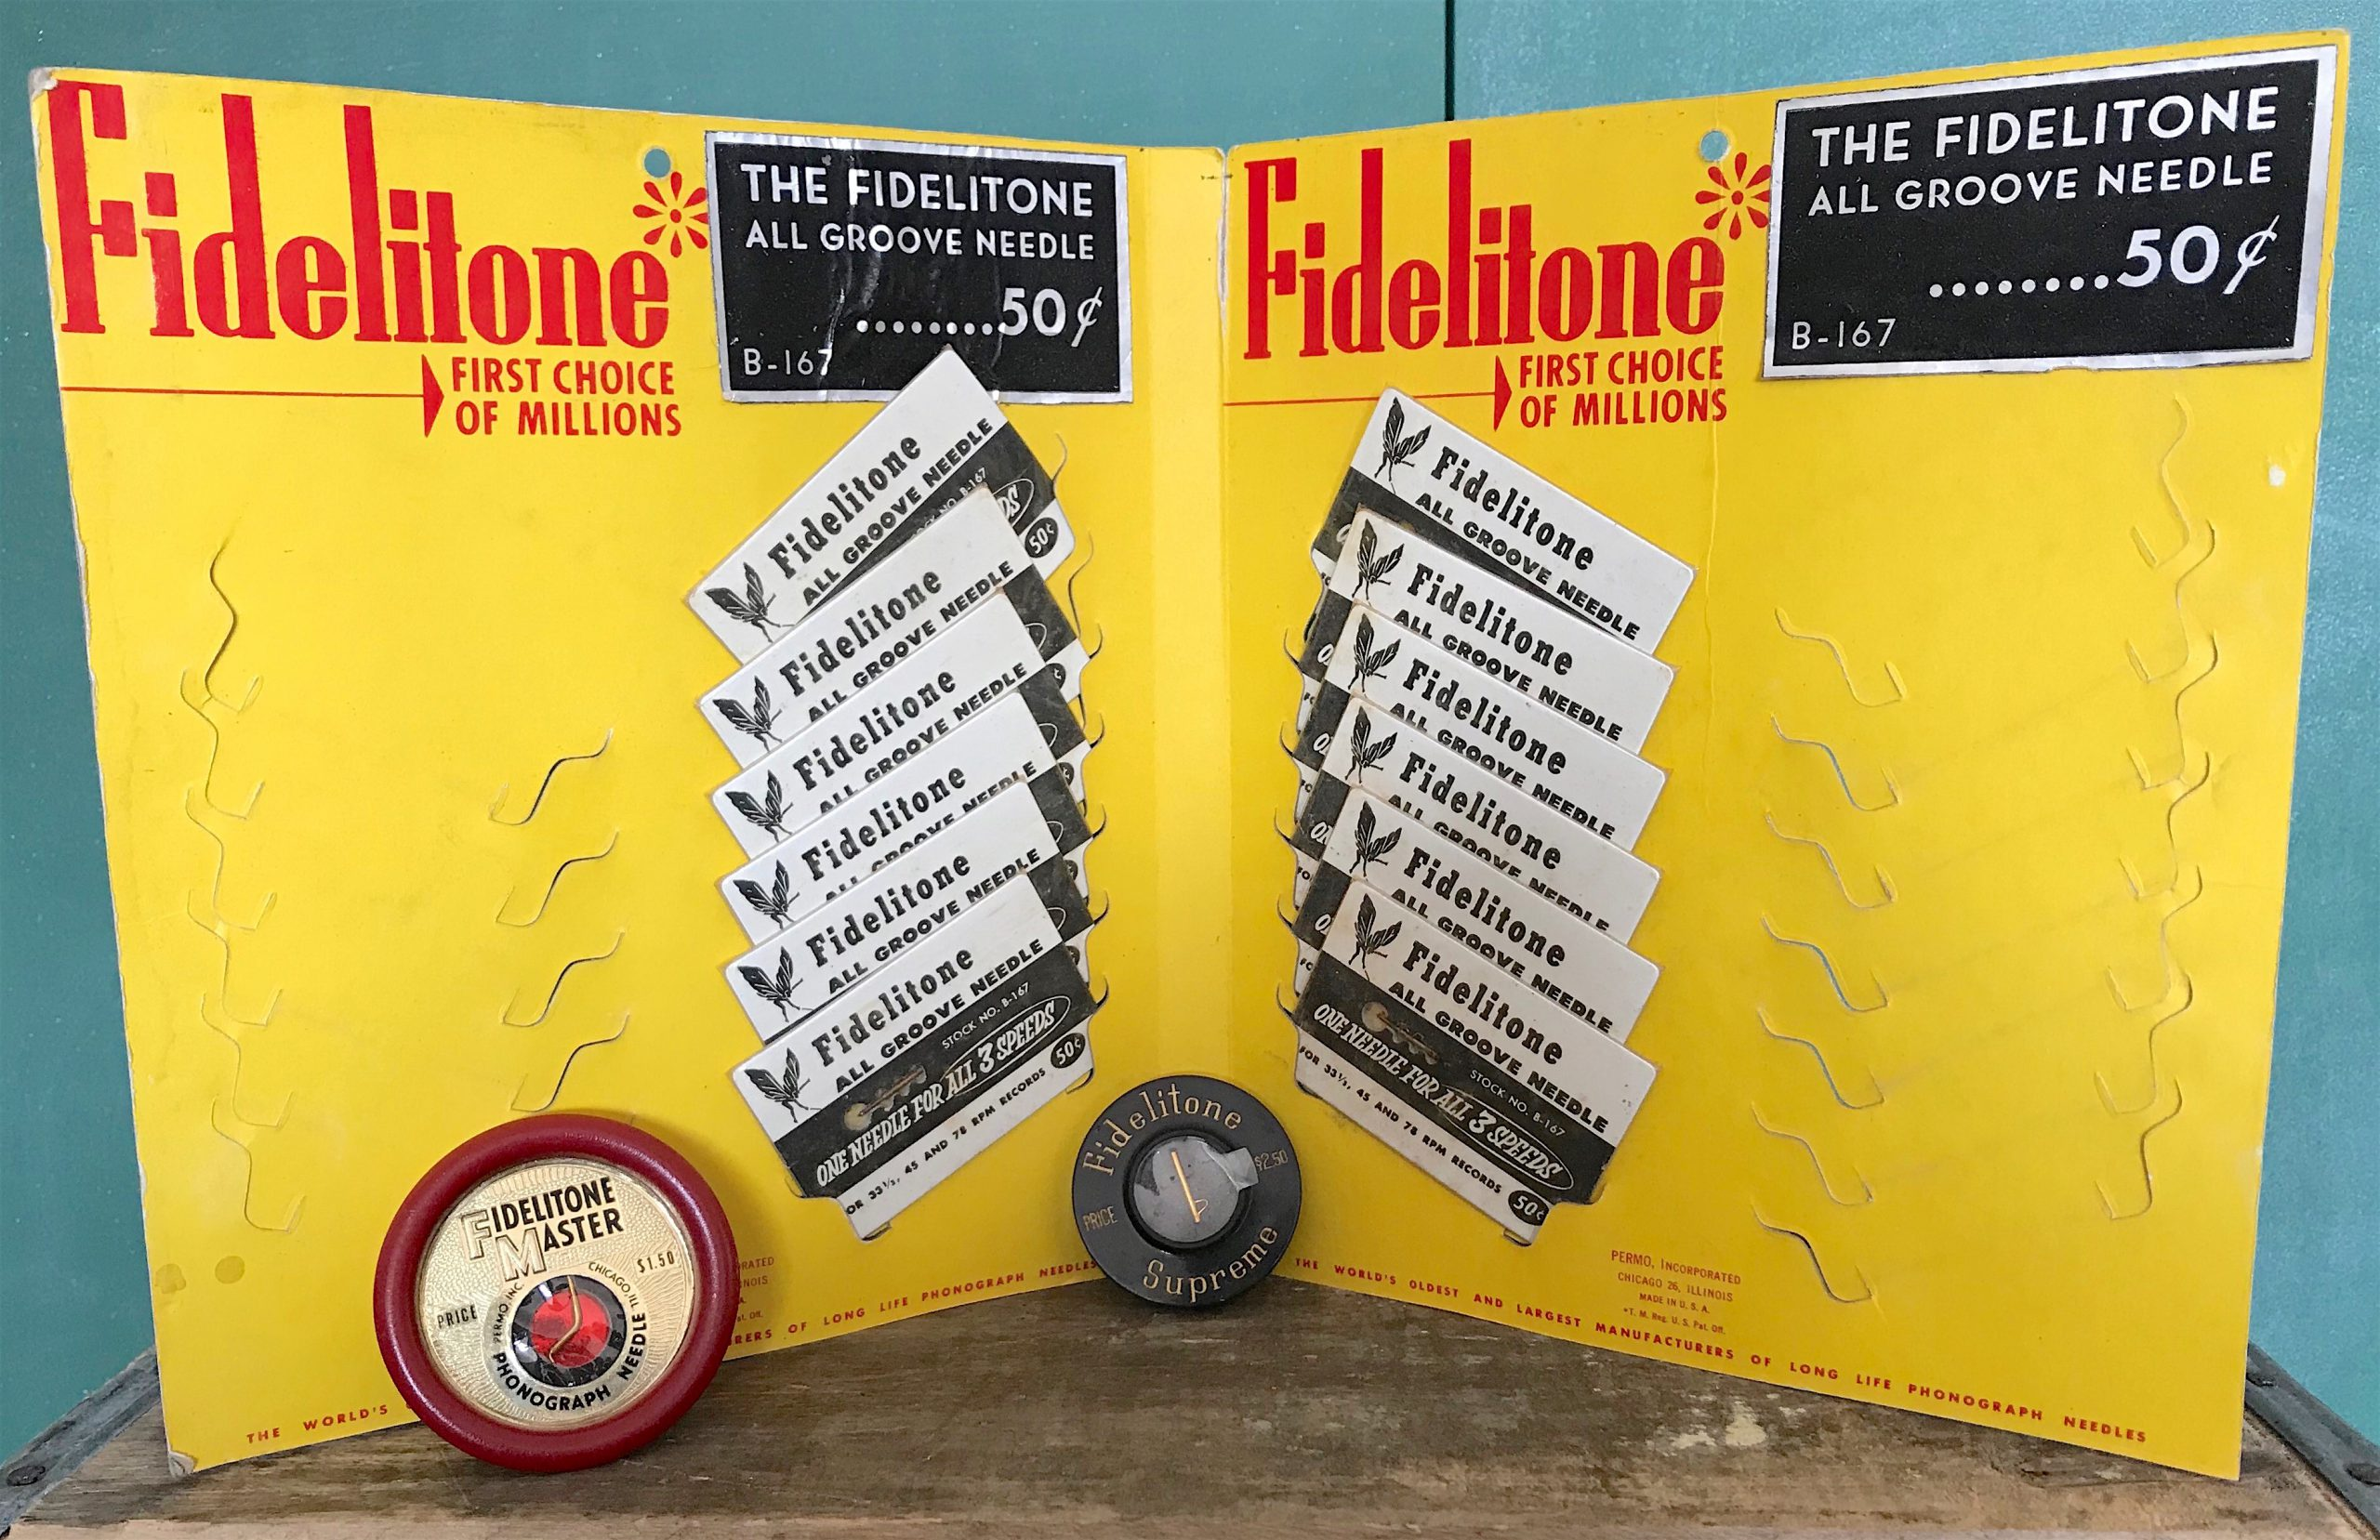 Fidelitone Needles Permo Inc.